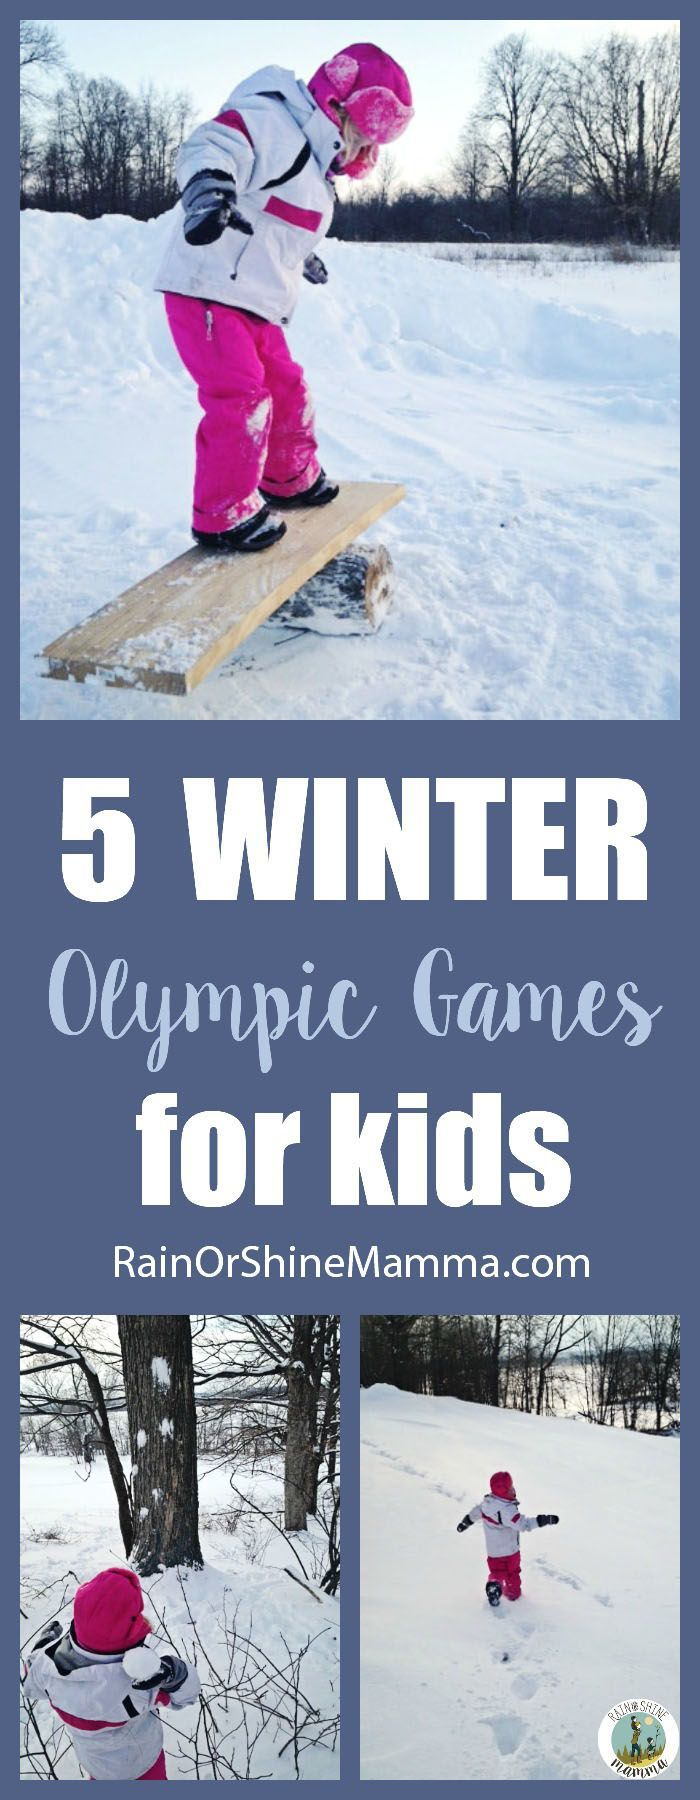 5 Fun Winter Olympic Games for Kids. Perfect outdoor activities for the backyard!  #olympics #olympic #games #kids #activities #backyard #winter #snow